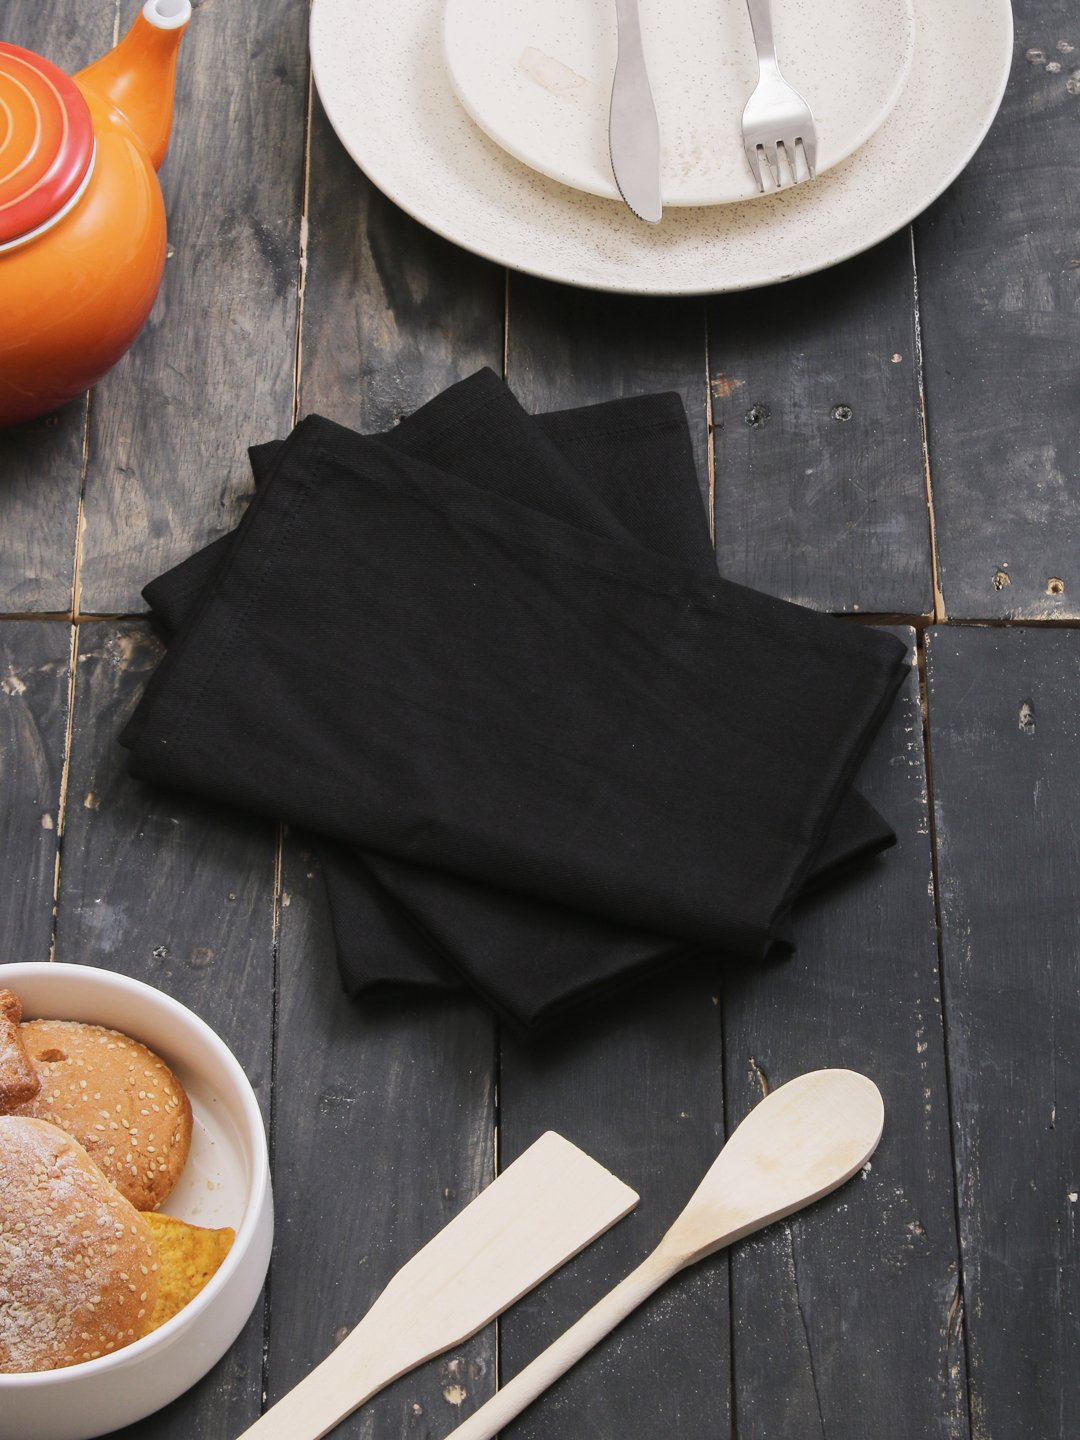 100% Cotton Napkins Black - 12 Pack (18 inches x18 inches) Perfect use for Events and Regular Home Usage. Perfect Choose of Napkins.